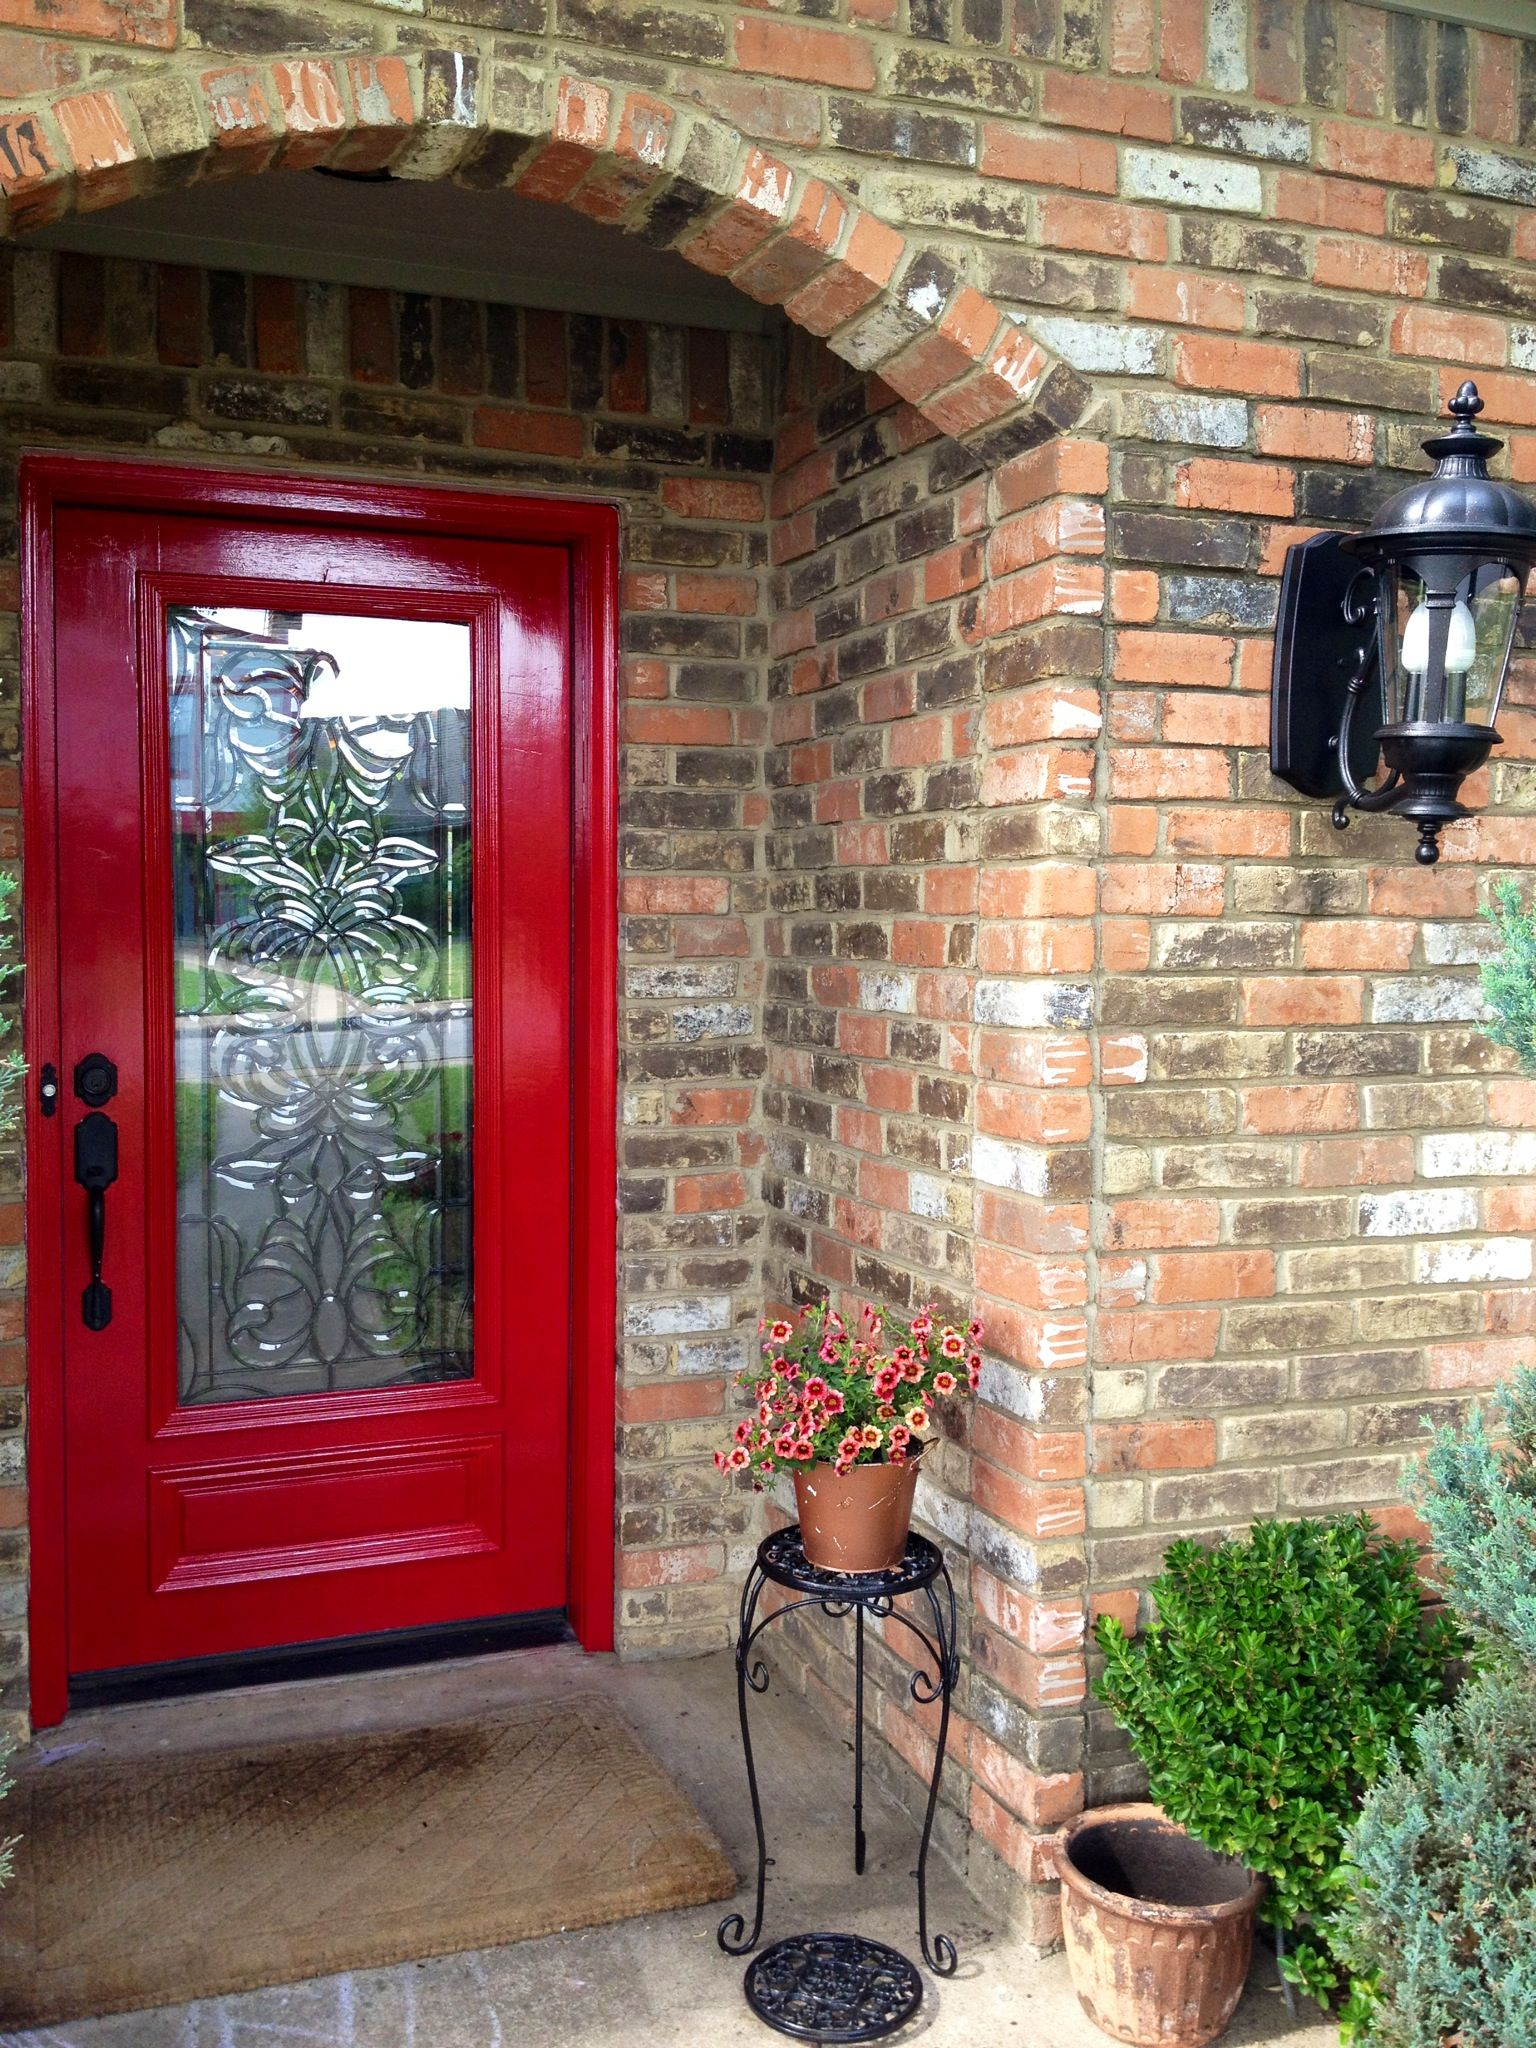 Glidden Trim Door Paint In Cherry Red Super Easy To Use Super